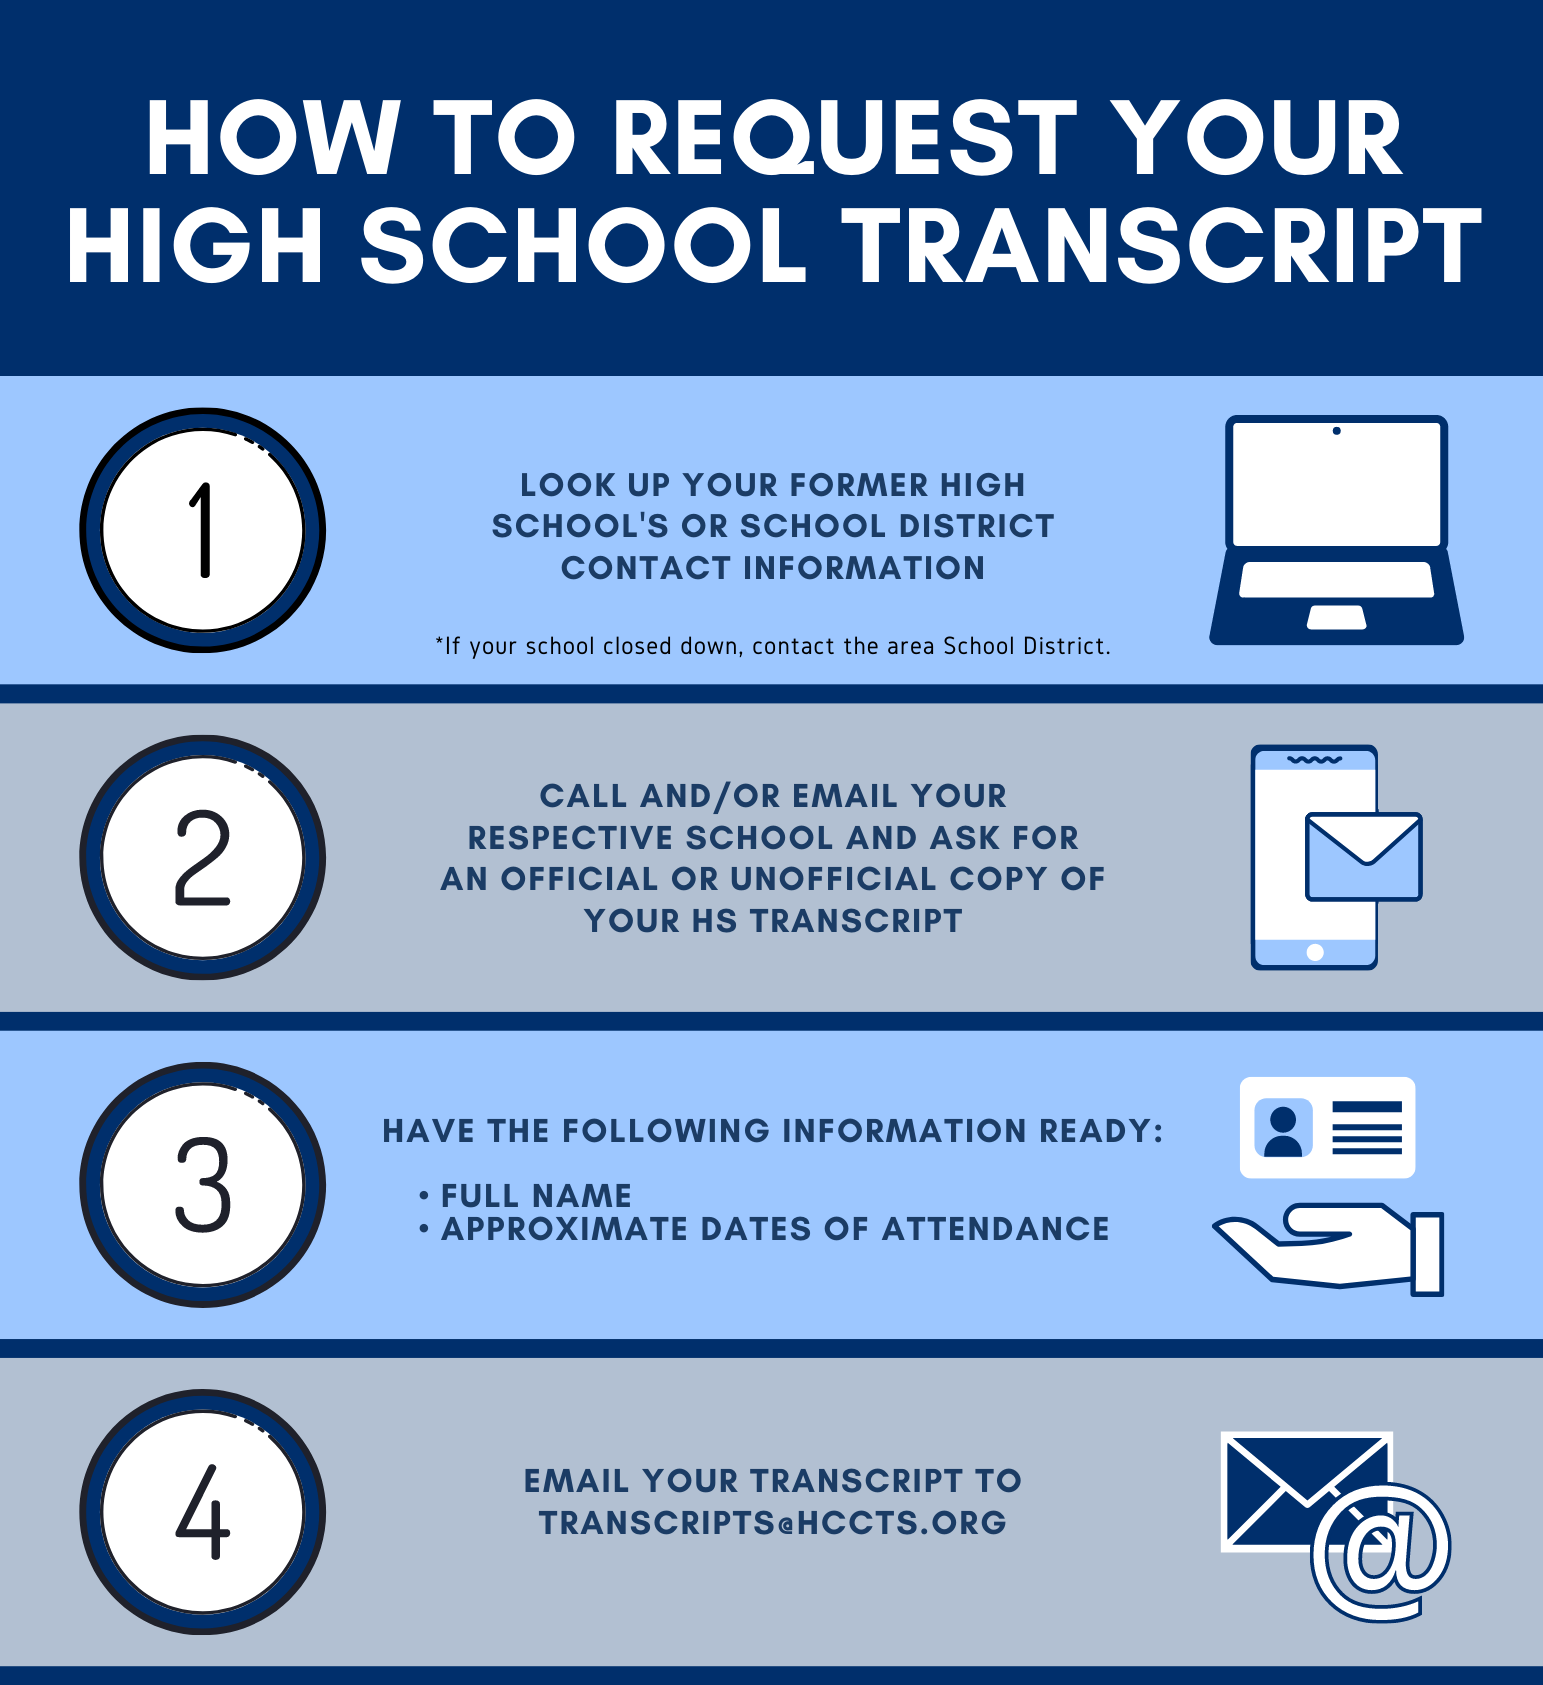 Steps to request your transcript